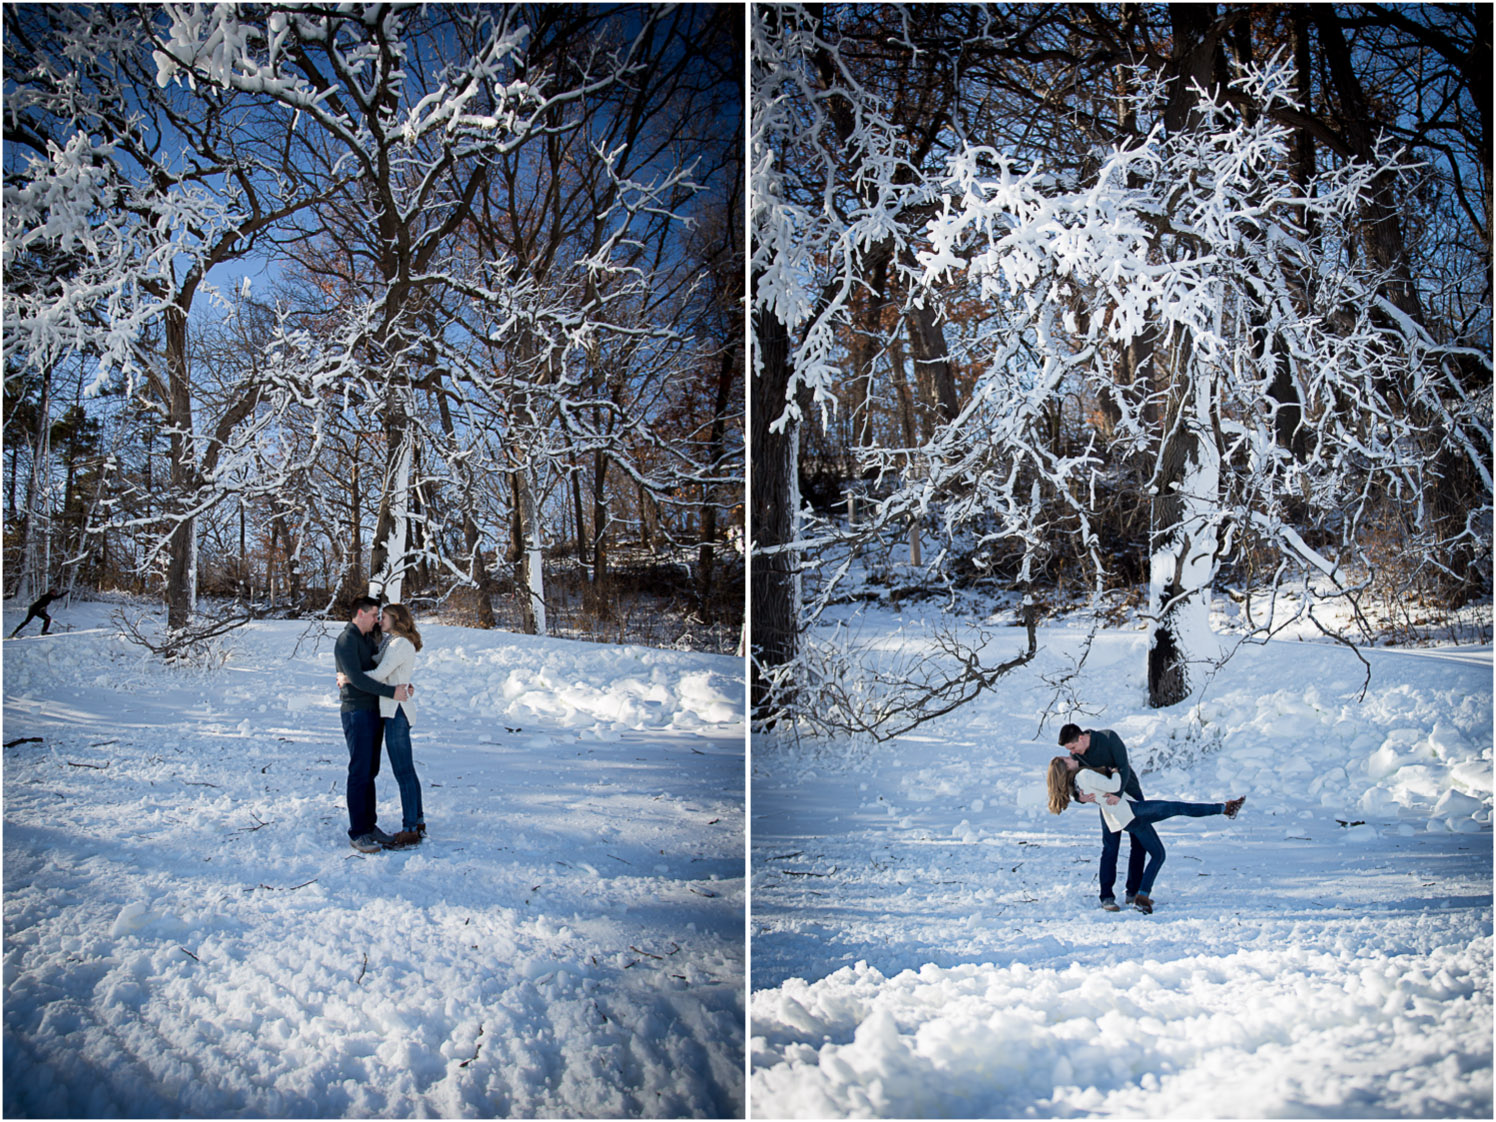 07-minnesota-winter-wonderland-mn-engagement-photographer-theodore-wirth-park-snowy-trees-mahonen-photography.jpg